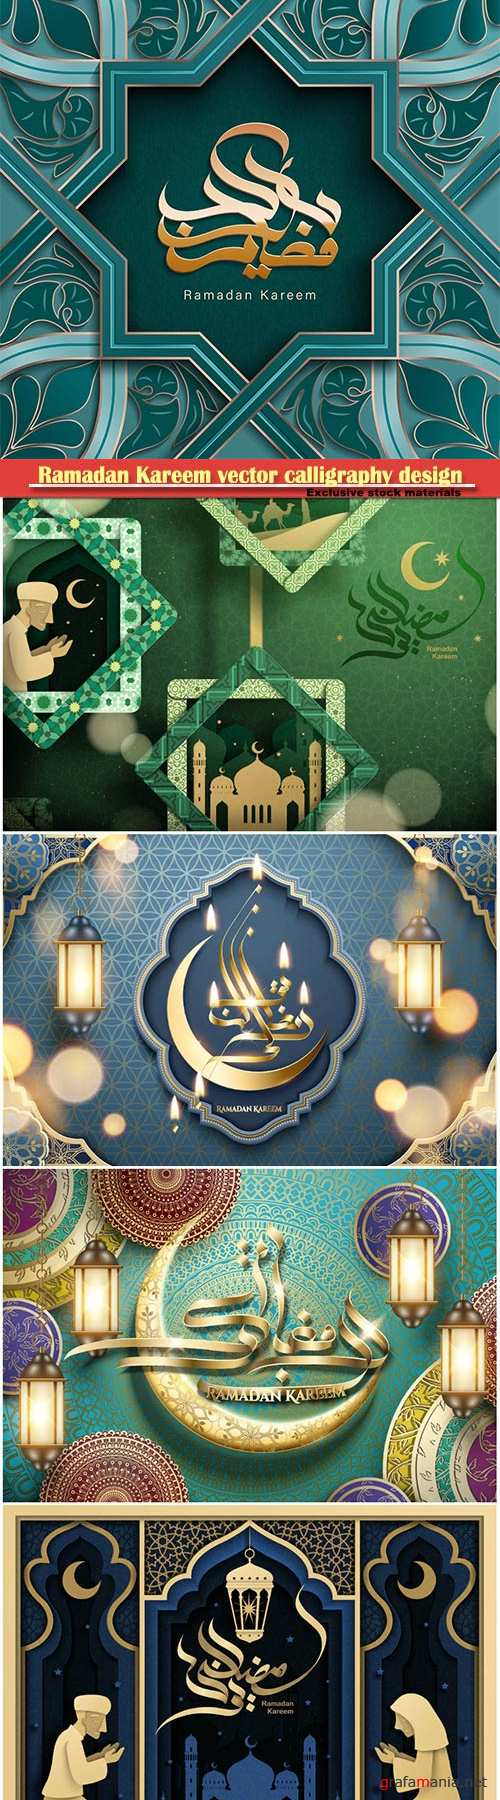 Ramadan Kareem vector calligraphy design with decorative floral pattern,mosque silhouette, crescent and glittering islamic background # 1